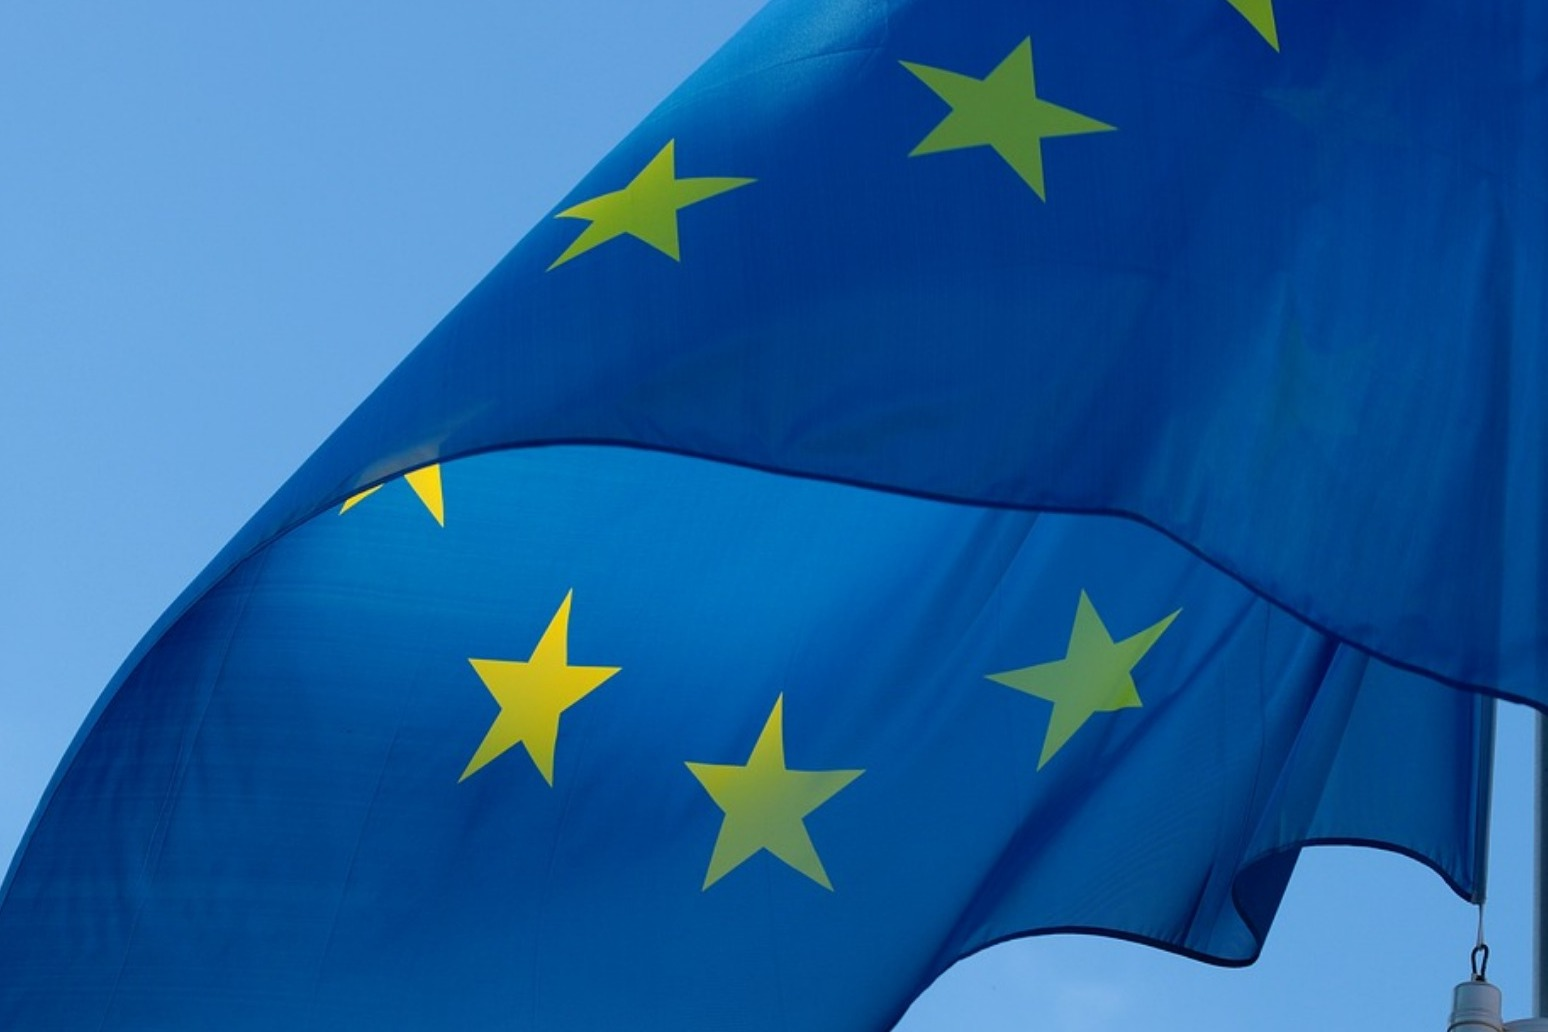 Tusk proposes to offer UK 12-month flexible extension to